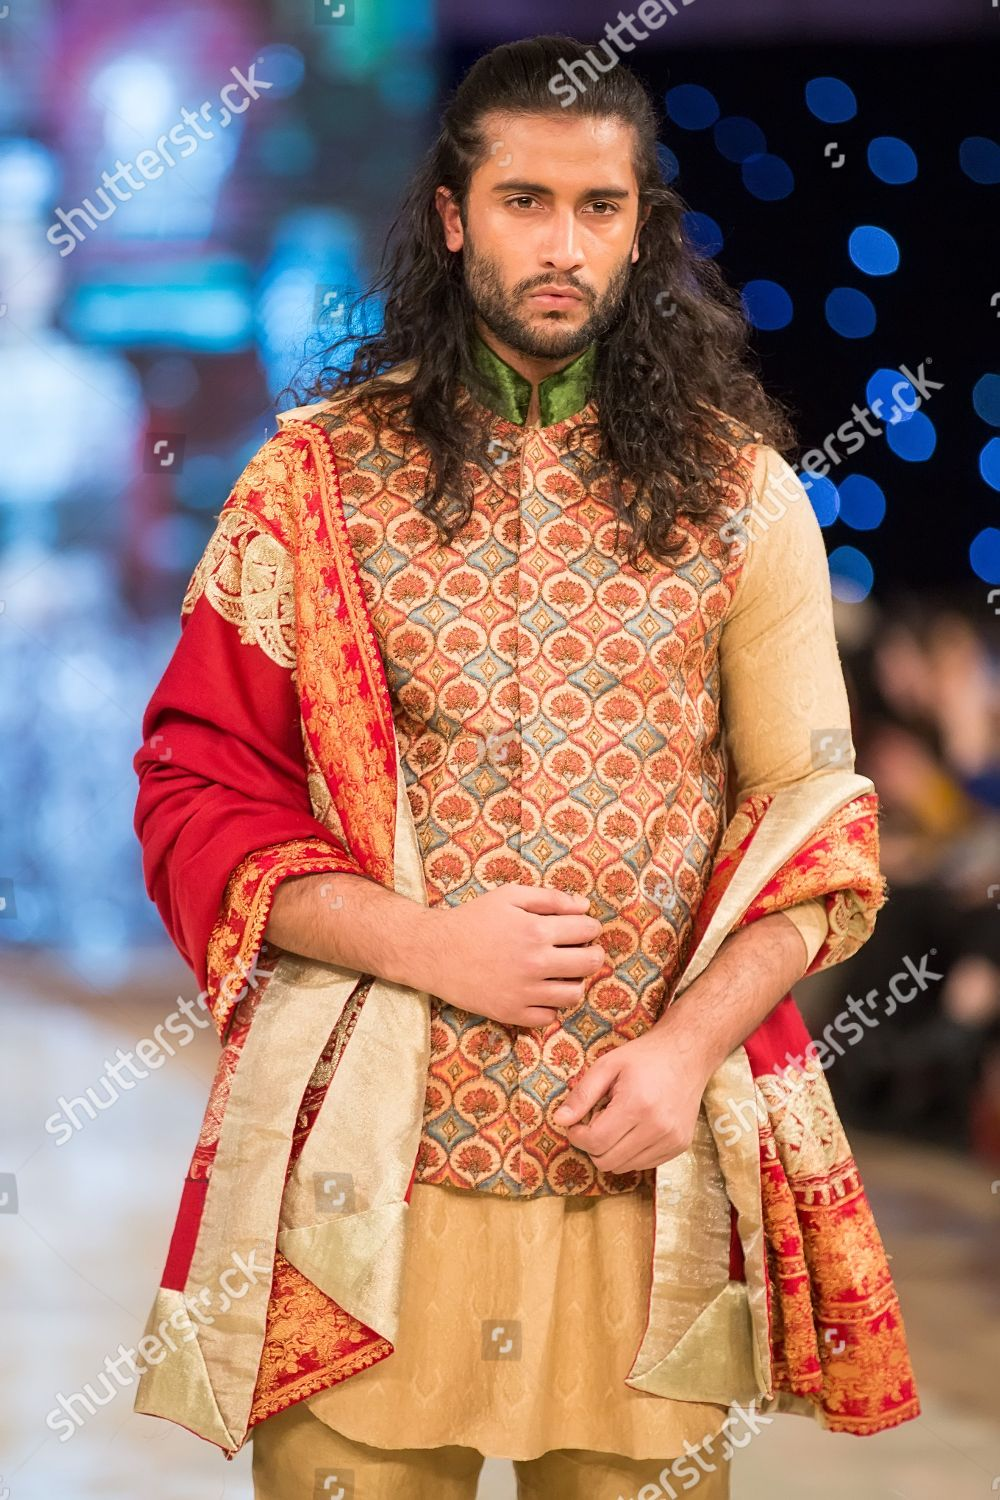 Model On Catwalk Showcasing Rana Noman Design Editorial Stock Photo Stock Image Shutterstock